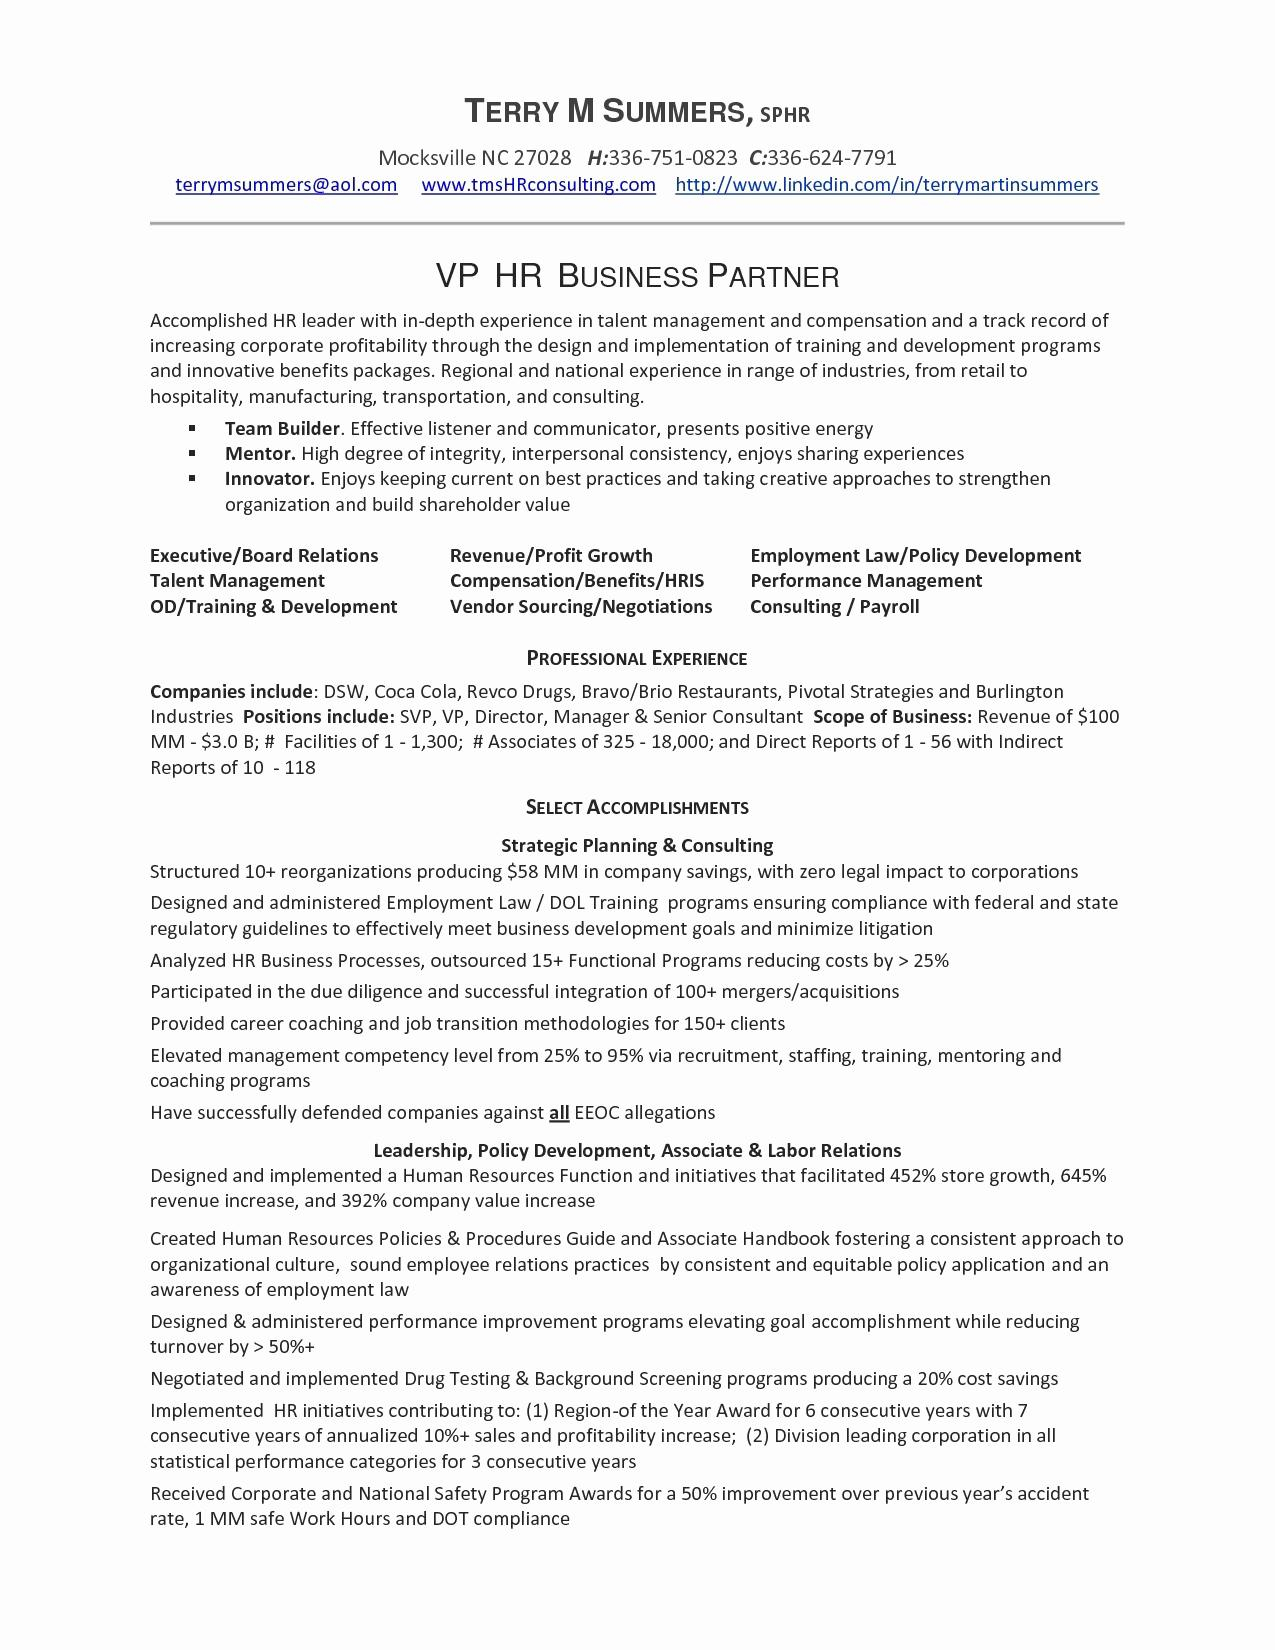 Leadership Resume Template - Resume Template Docx Lovely Executive Director Resume Template